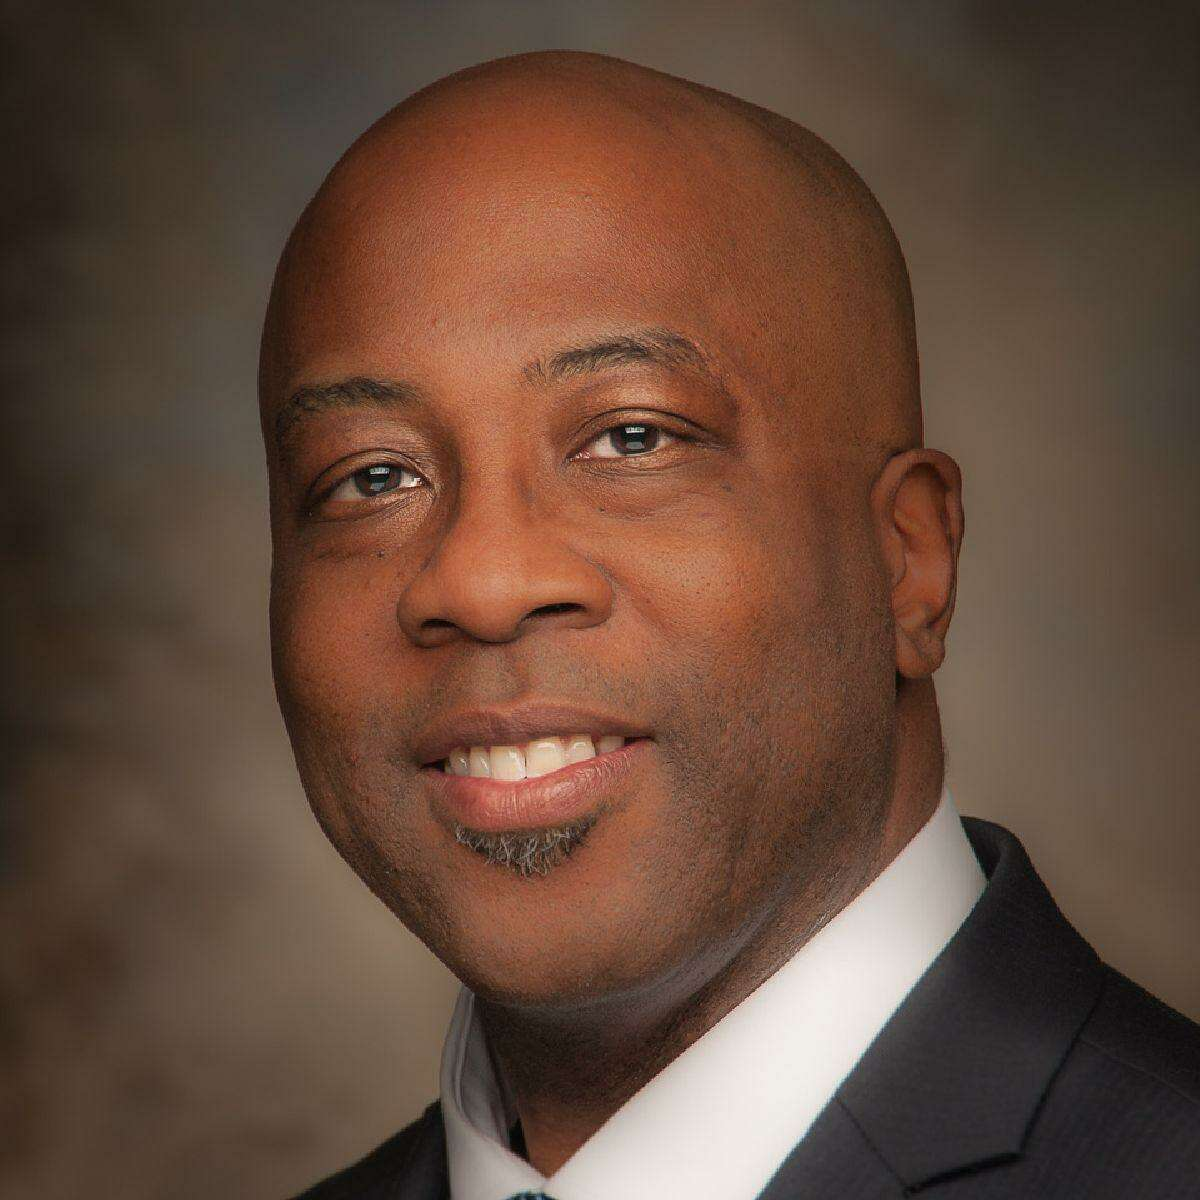 William Terry Brown, is the incoming CEO at Gateway Community College.